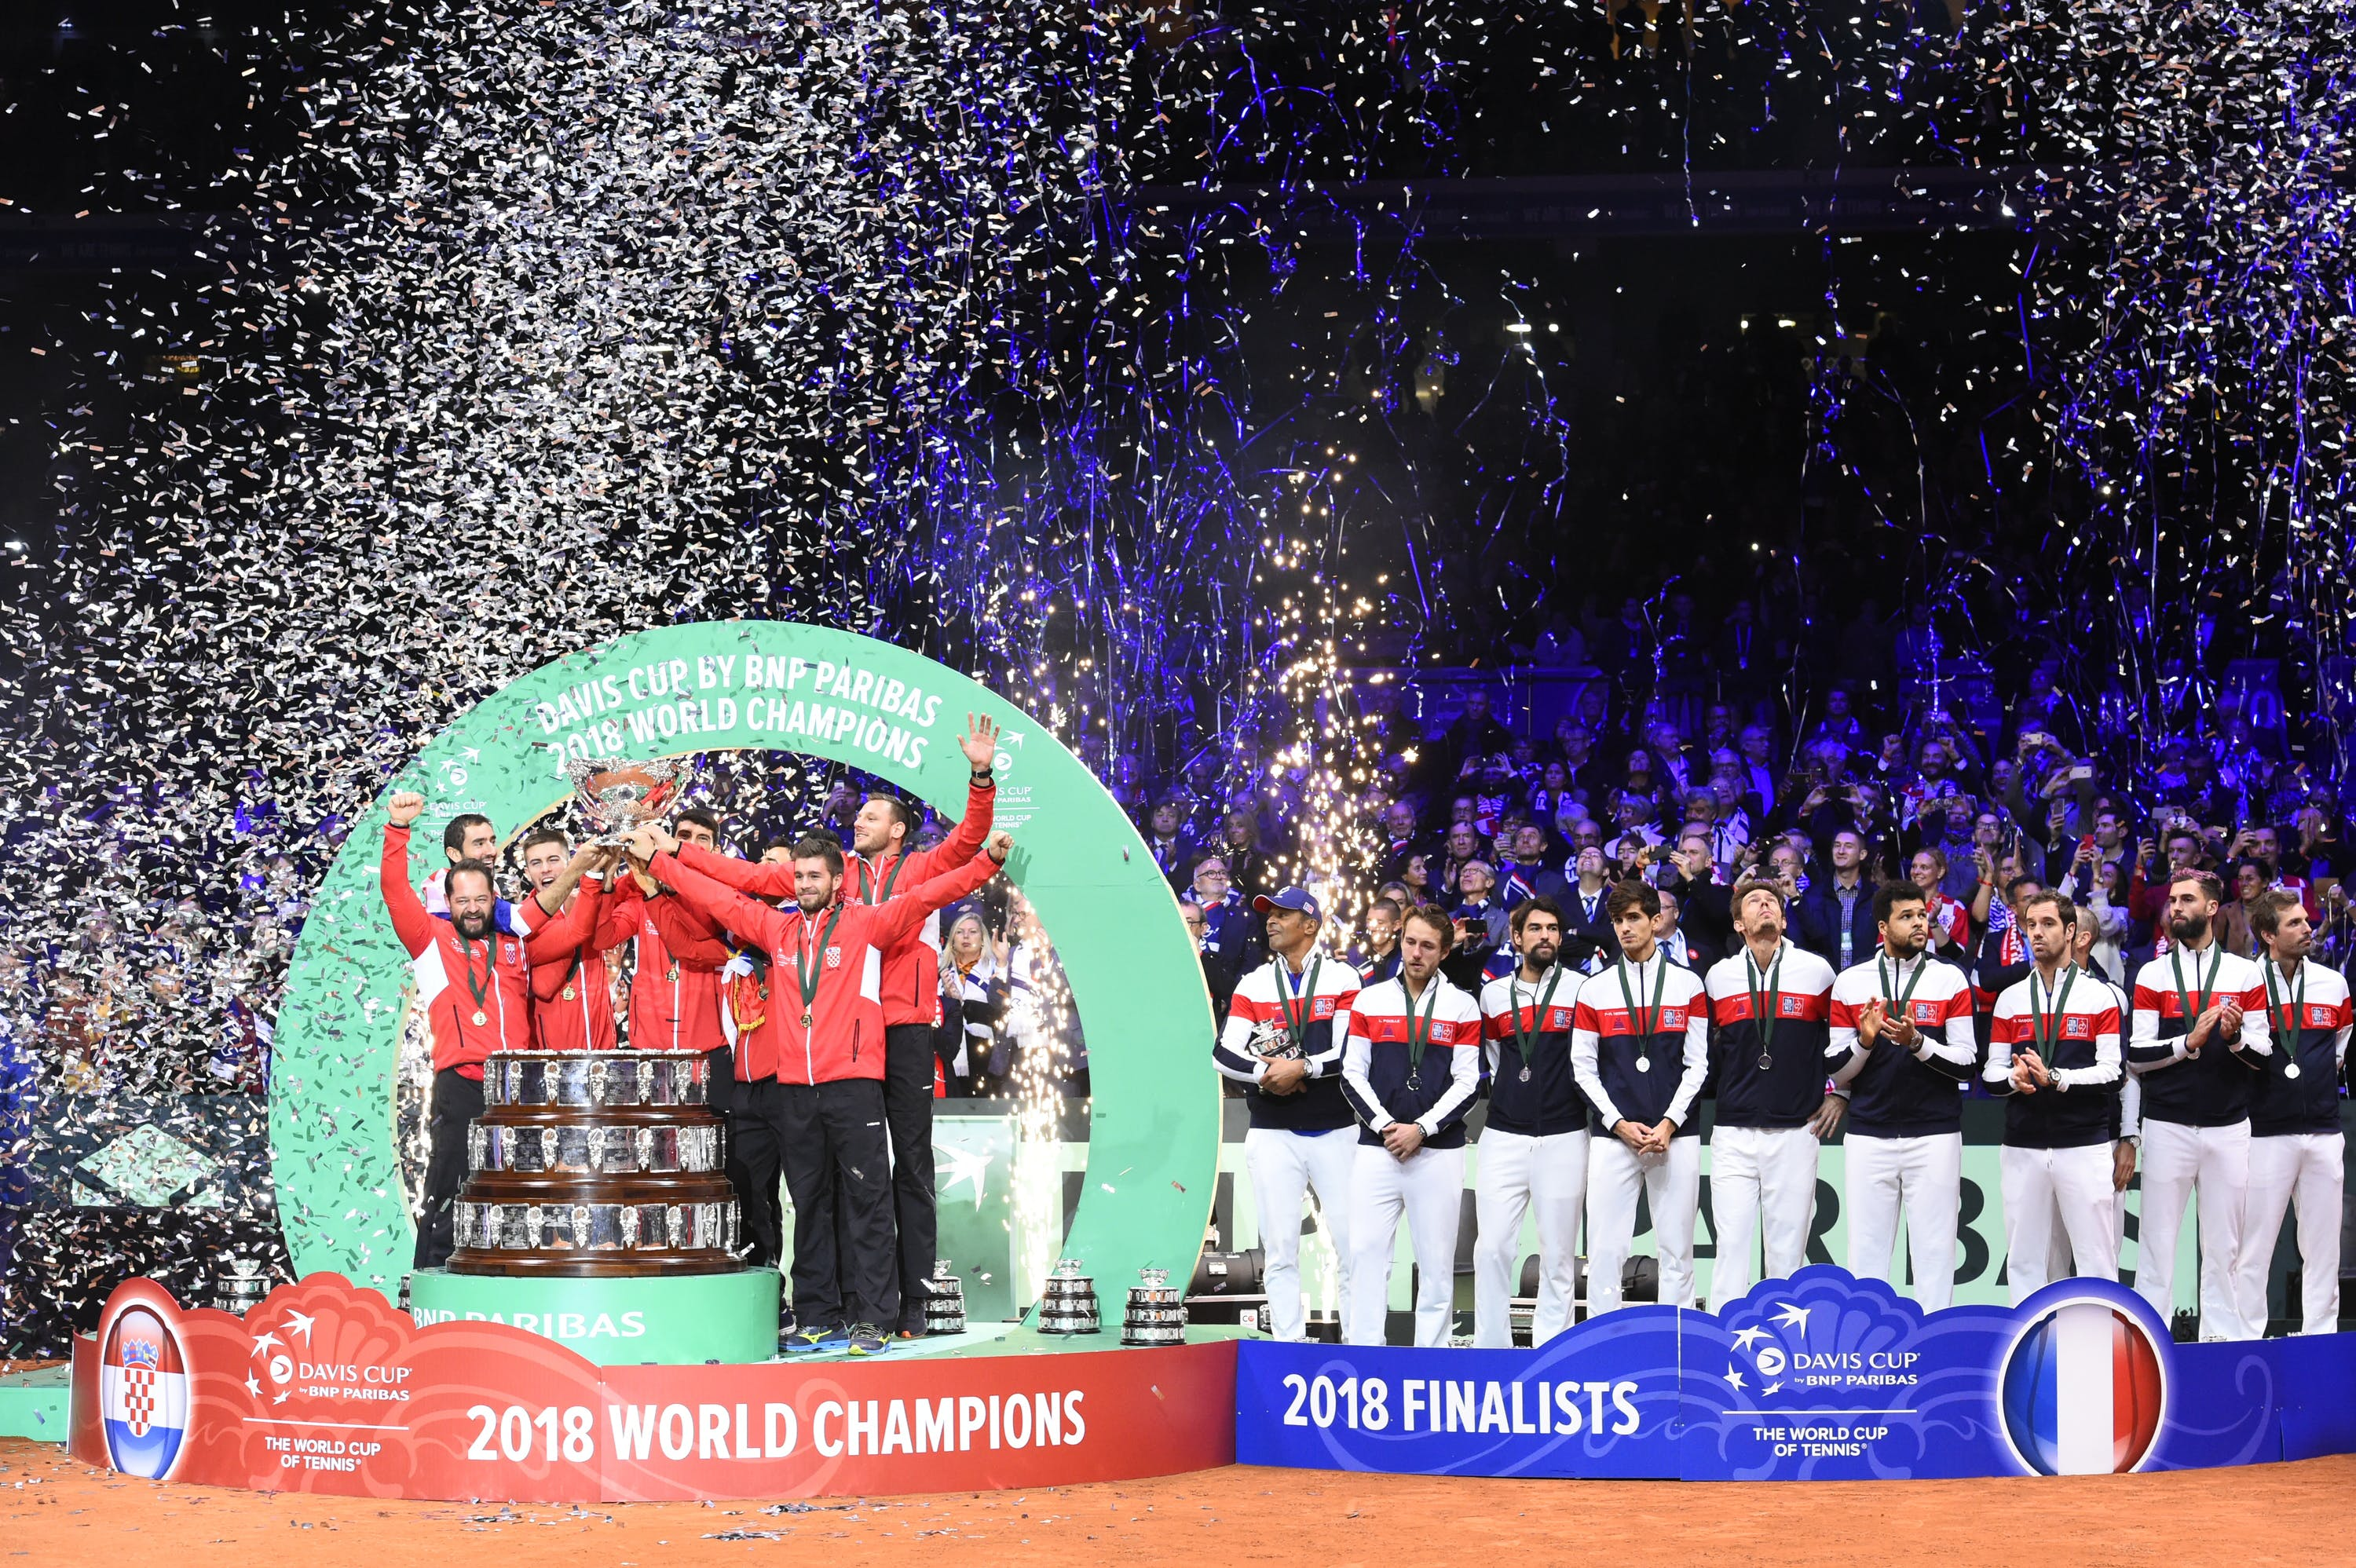 Croatia wins the 2018 Davis Cup final against France